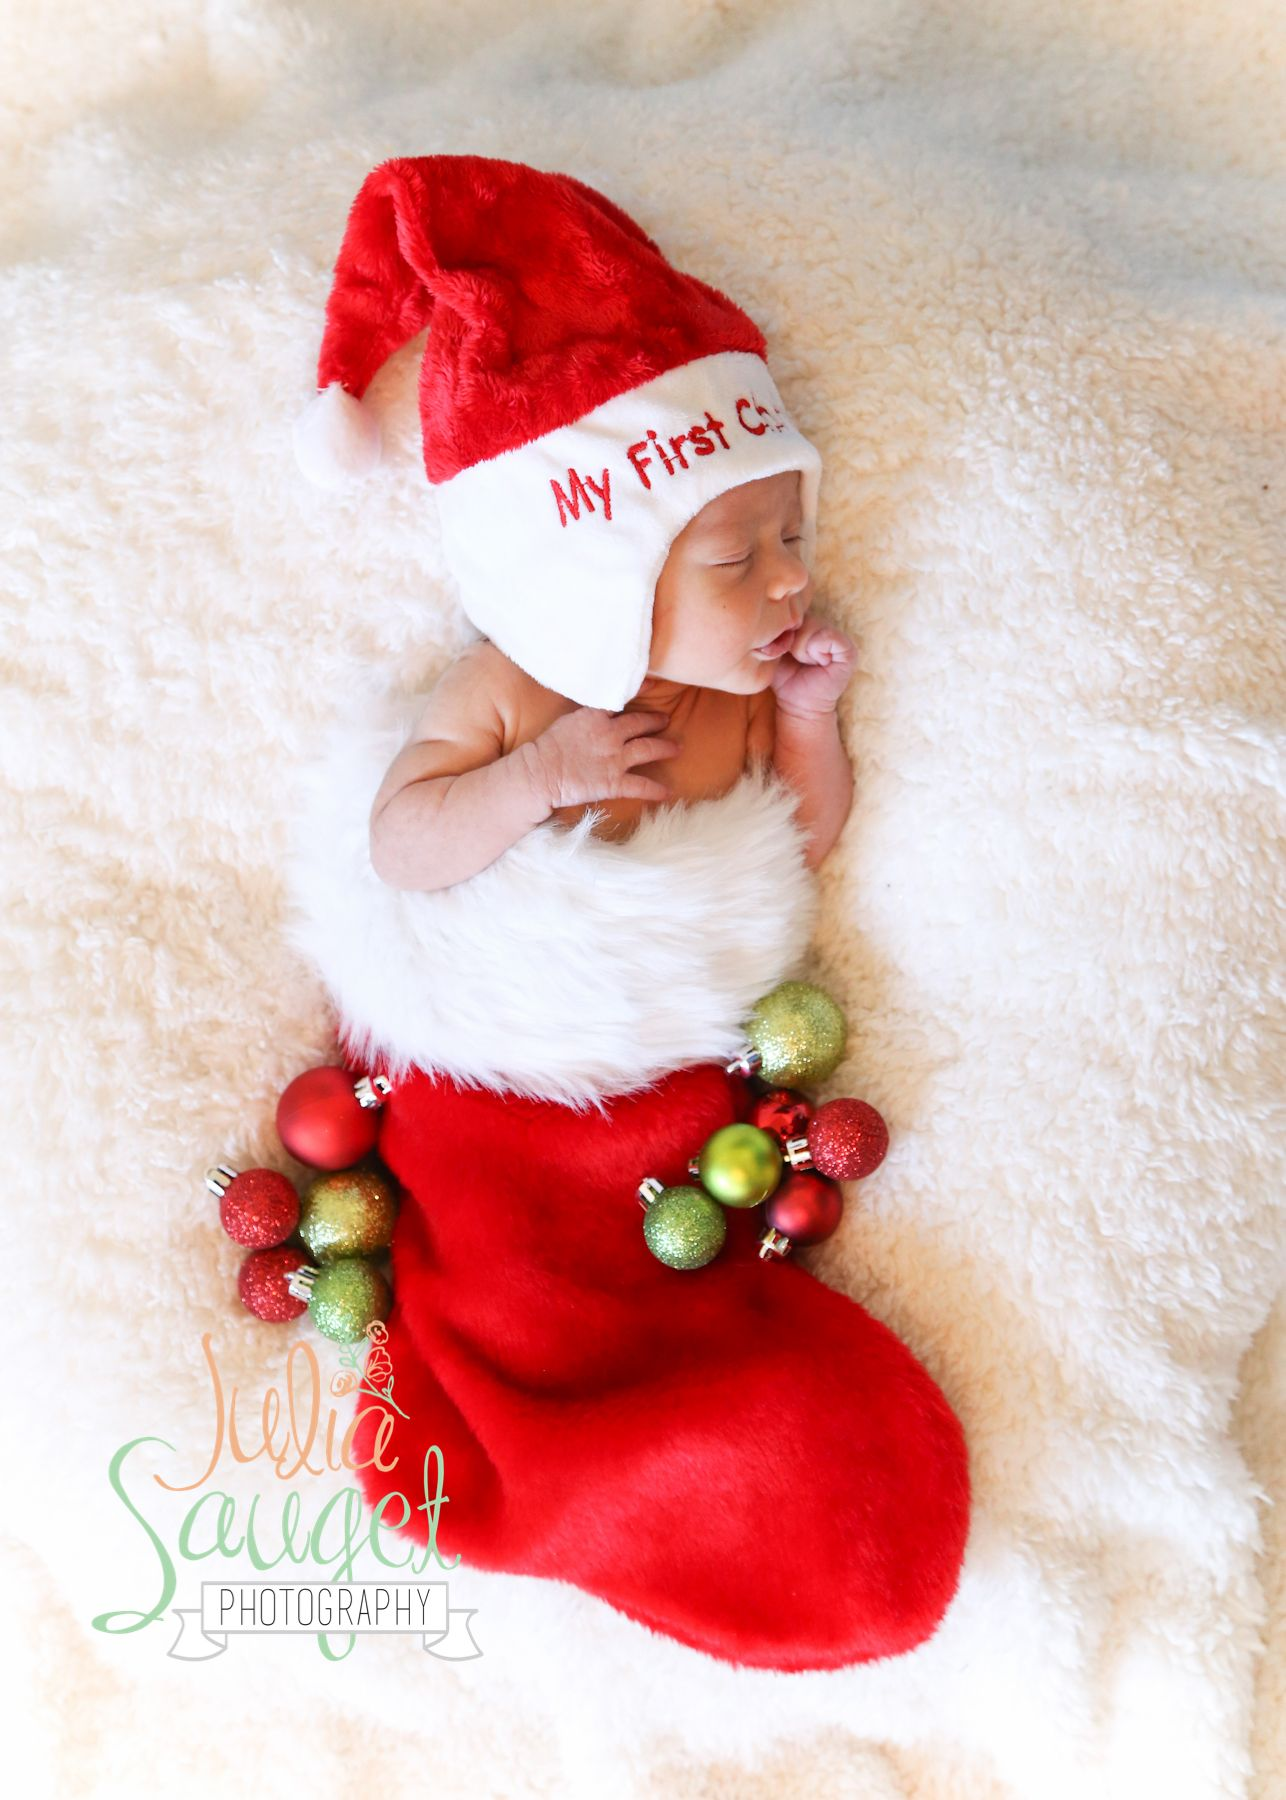 Christmas theme newborn photo shoot julia sauget photography